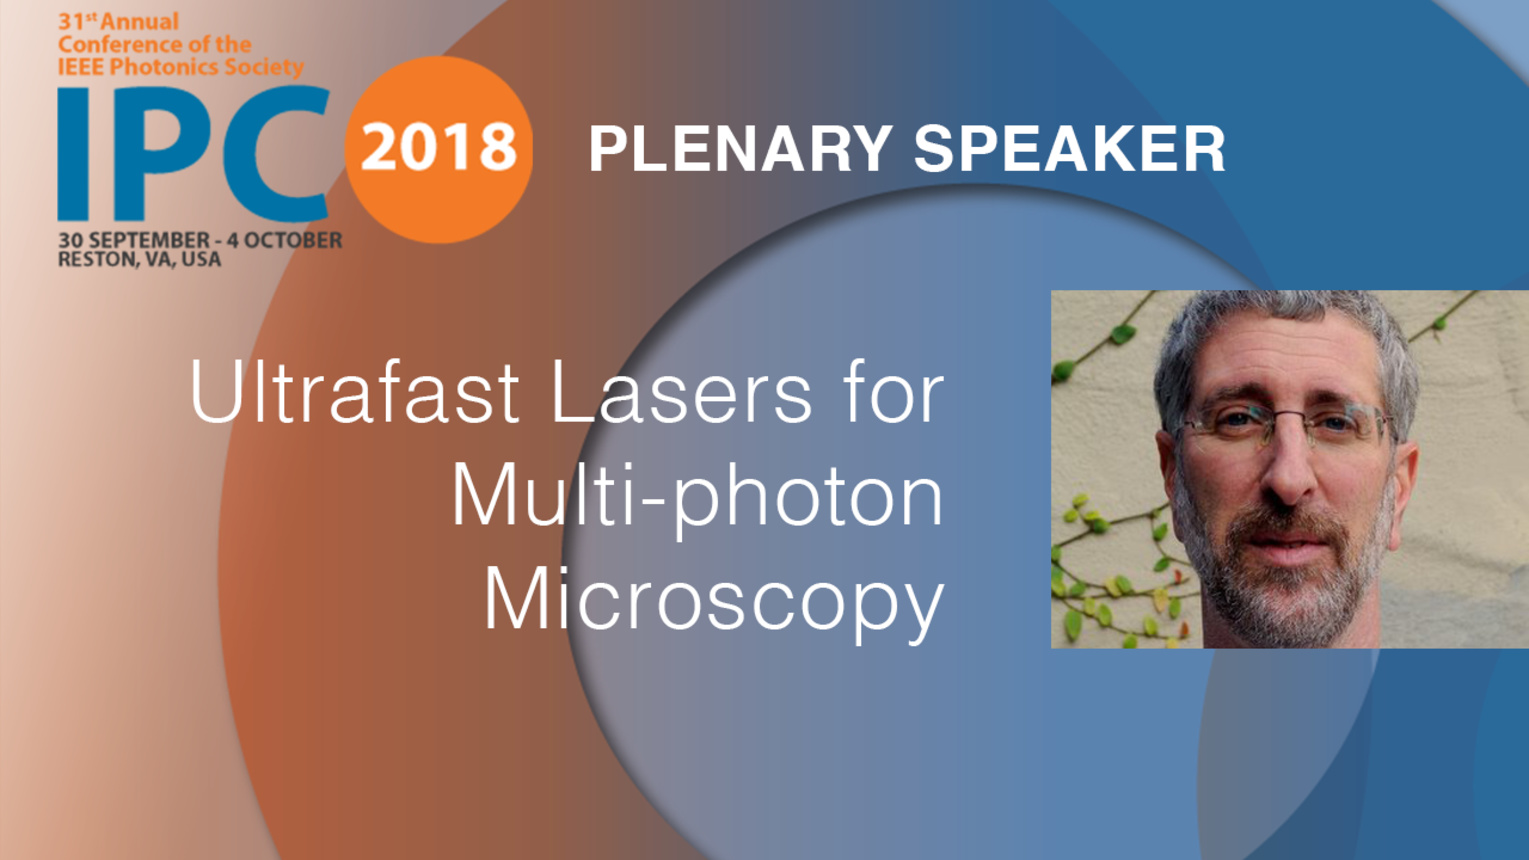 Ultrafast Lasers for Multi-photon Microscopy - Plenary Speaker: Jim Kafka - IPC 2018